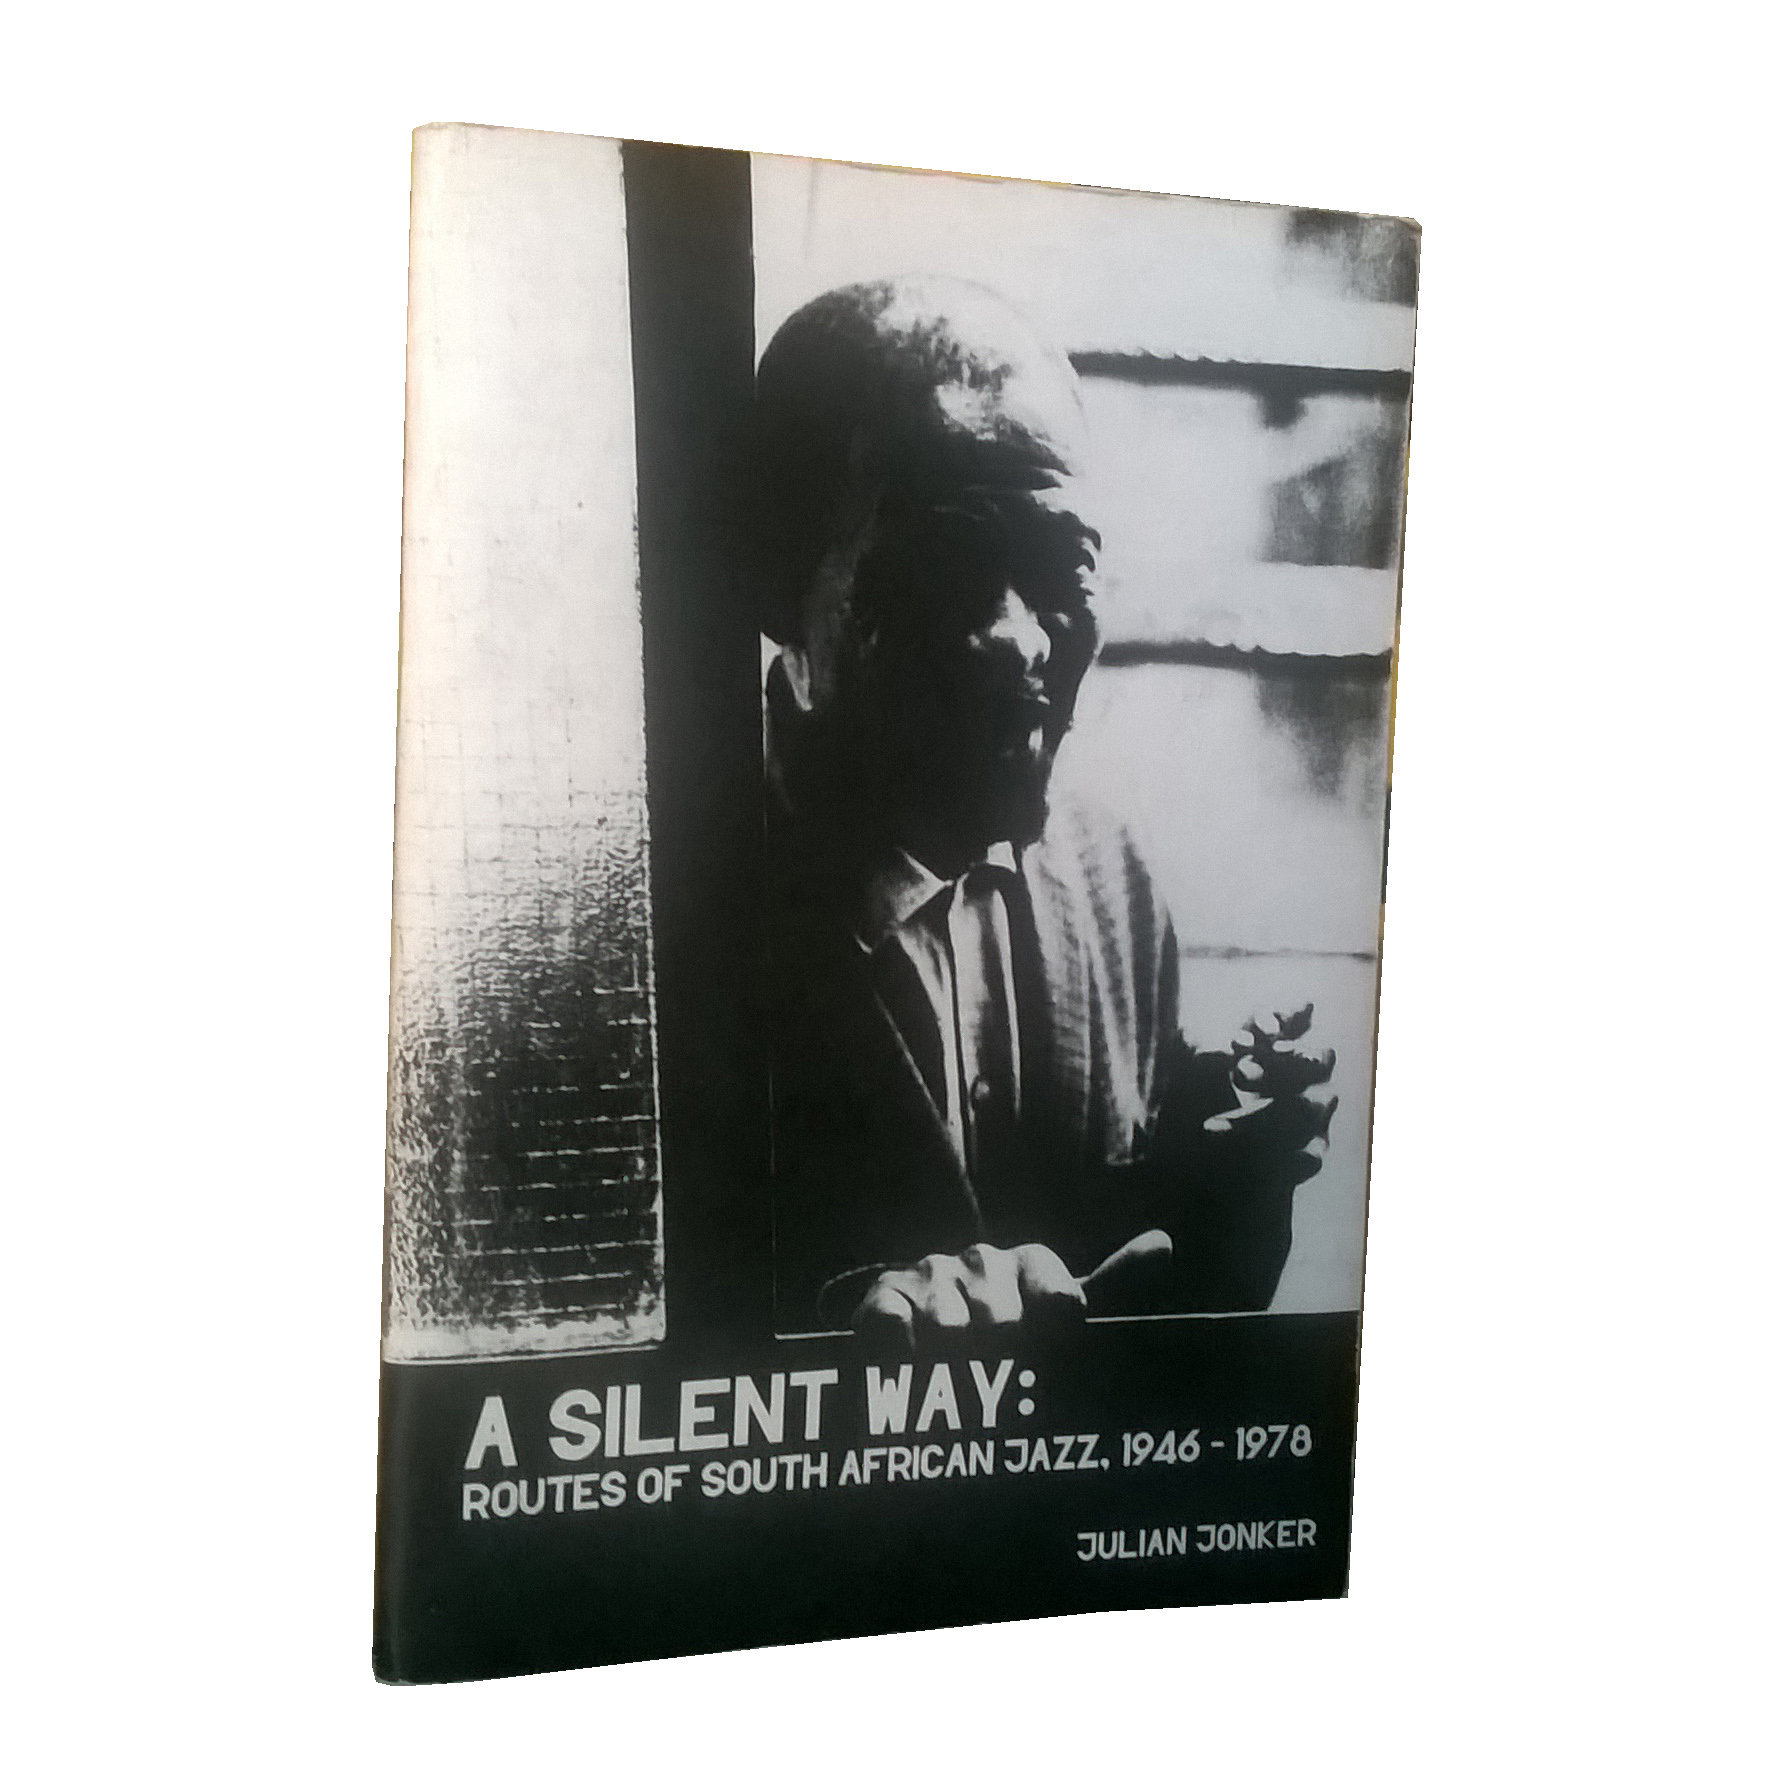 Chimurenganyana Series 1: A Silent Way: Routes of South African Jazz, 1946-1978 by Julian Jonker (June 2012) CN08